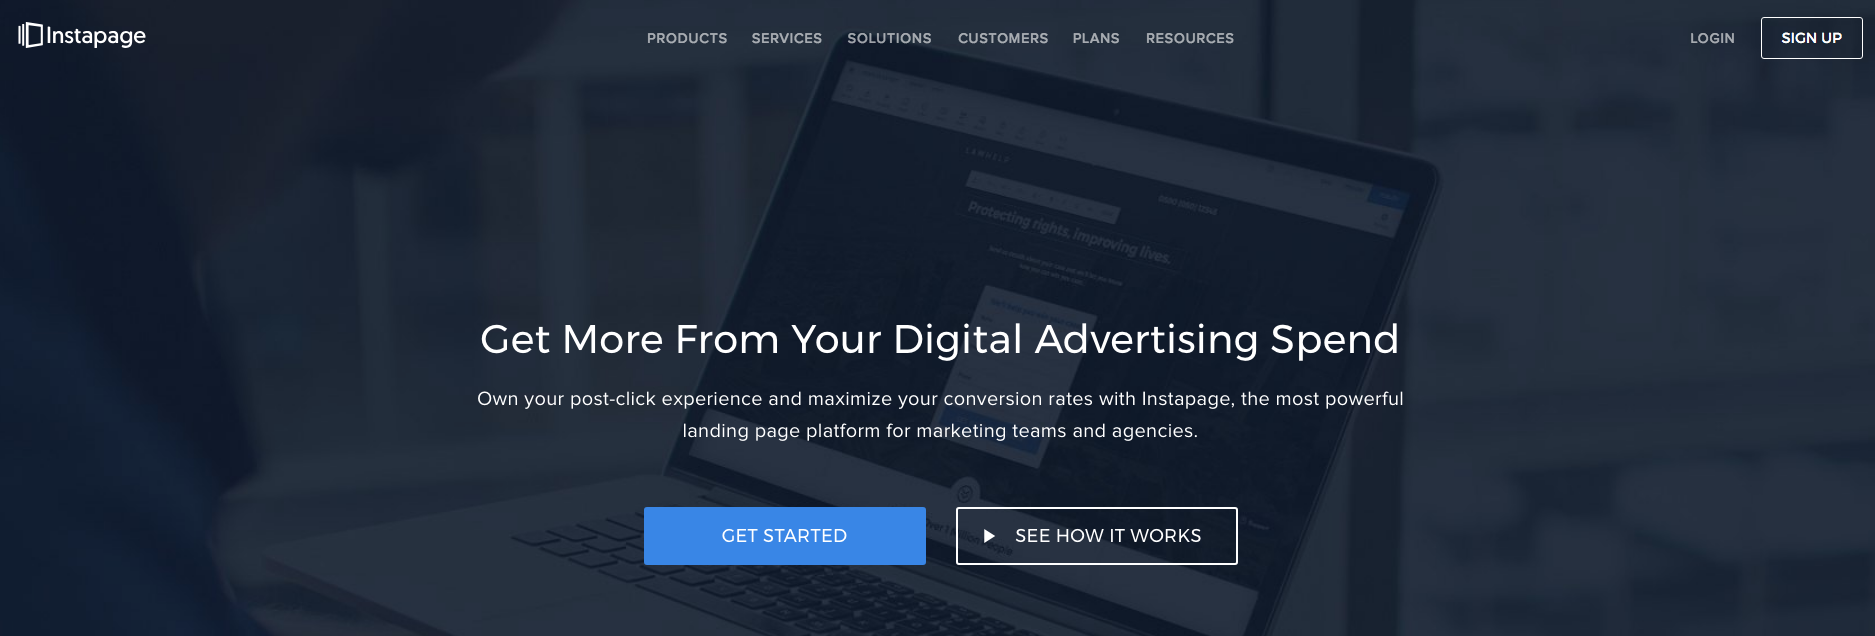 landing page con instapage